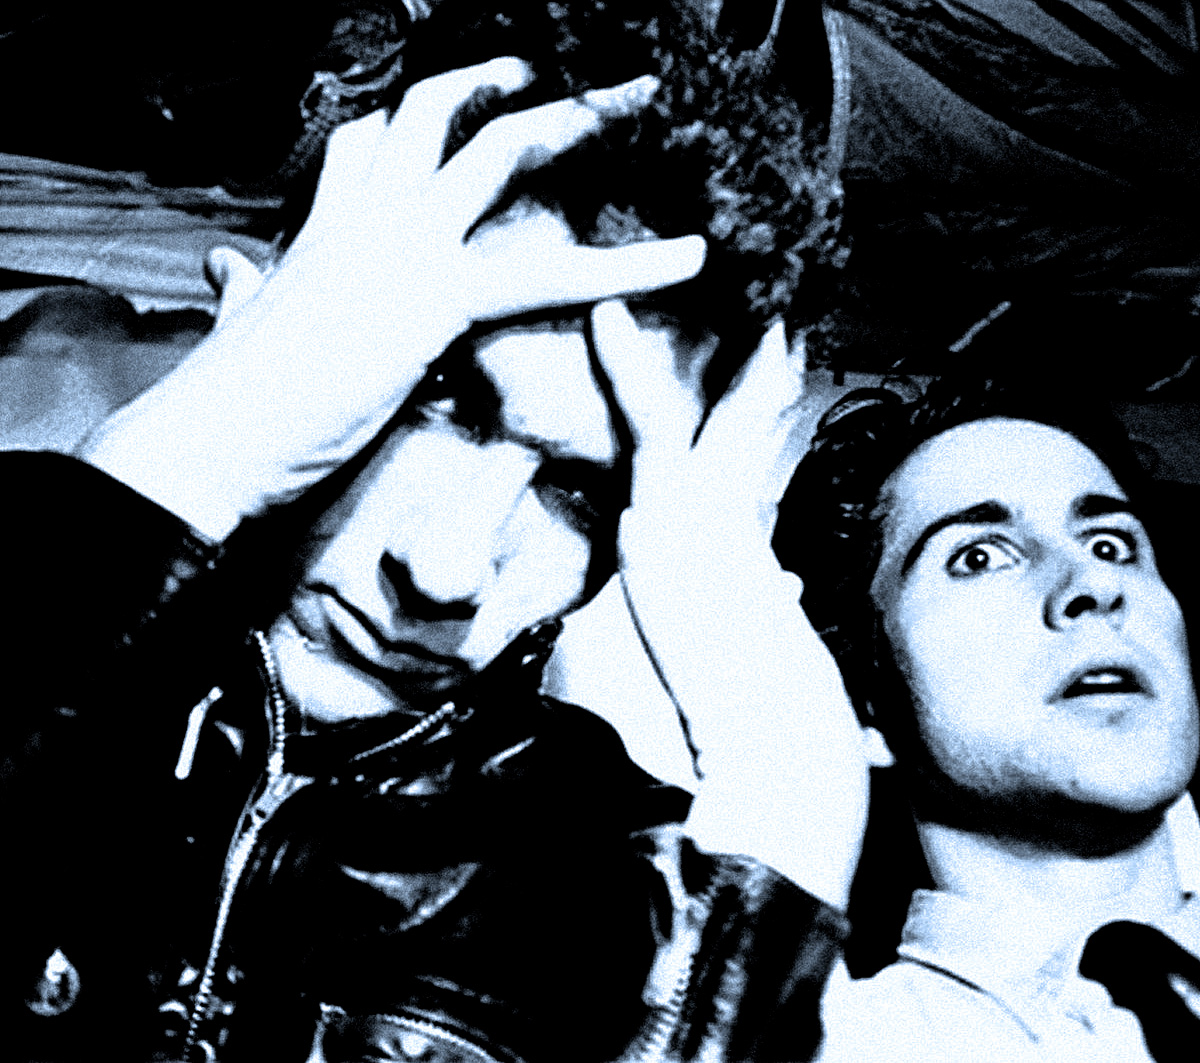 Tuxedomoon In Concert – 1979 – Past Daily Soundbooth